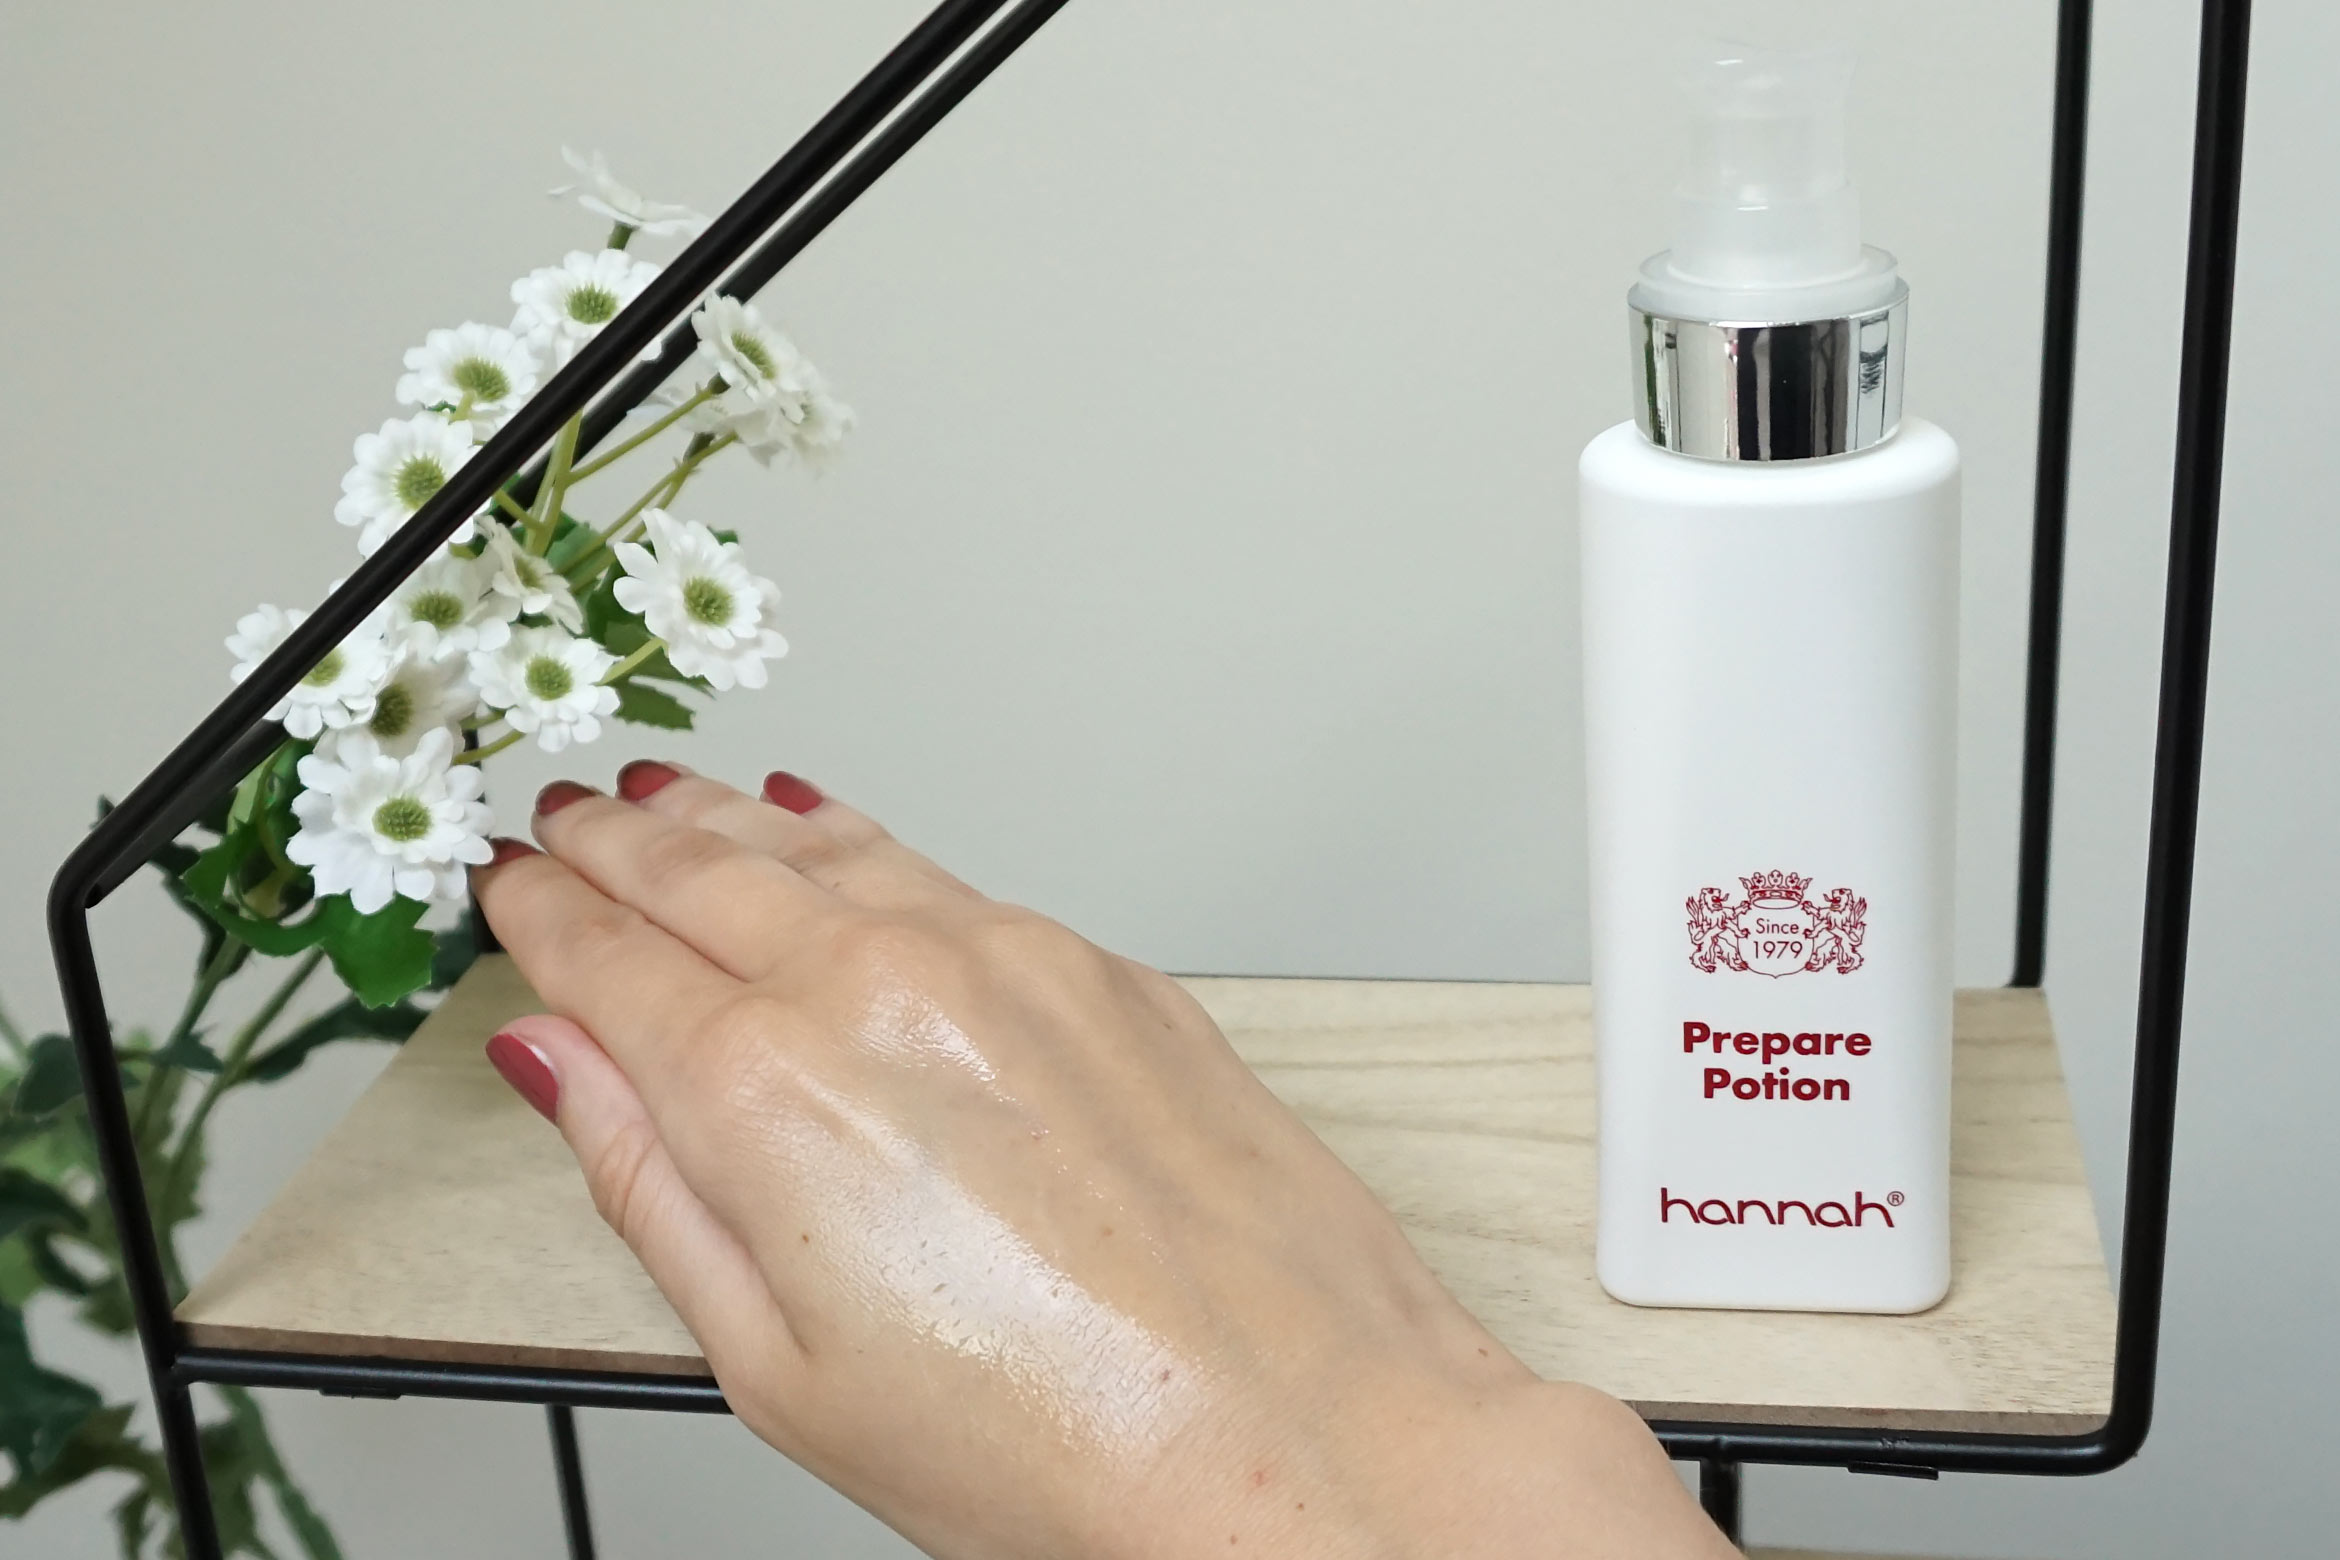 Hannah-Prepare-Potion-review-2